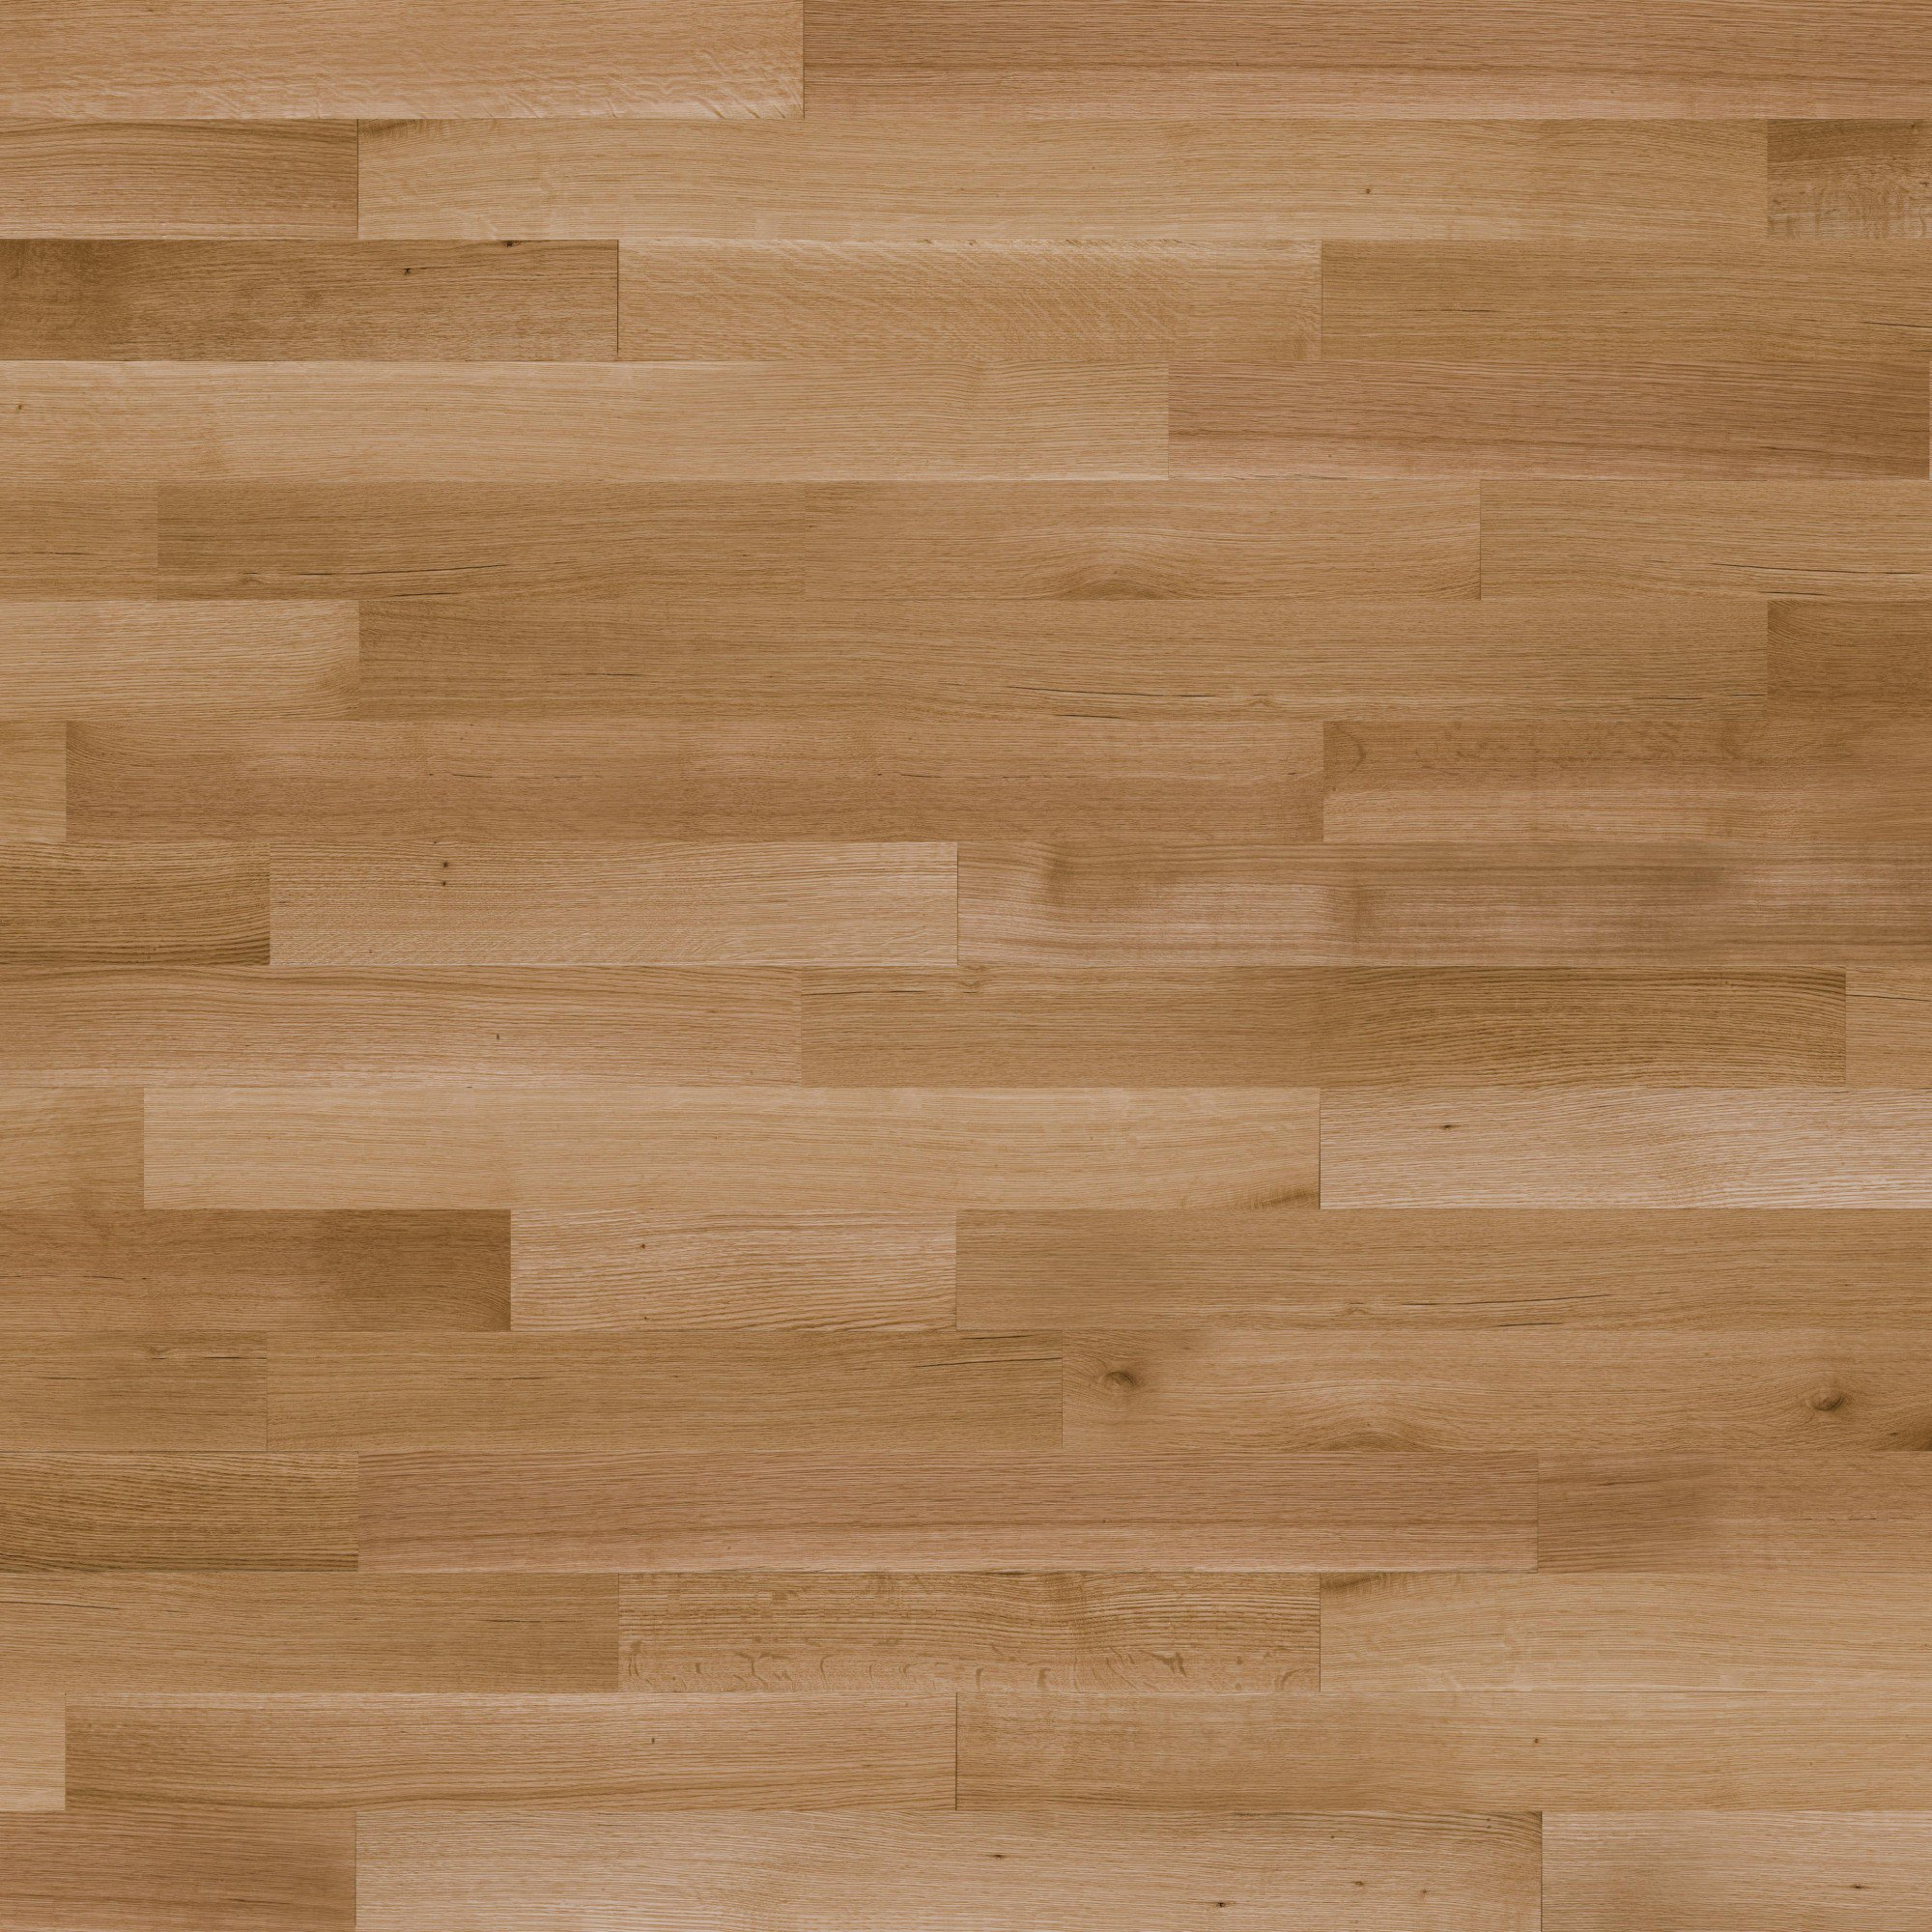 White Oak R&Q Exclusive Smooth - Floor image